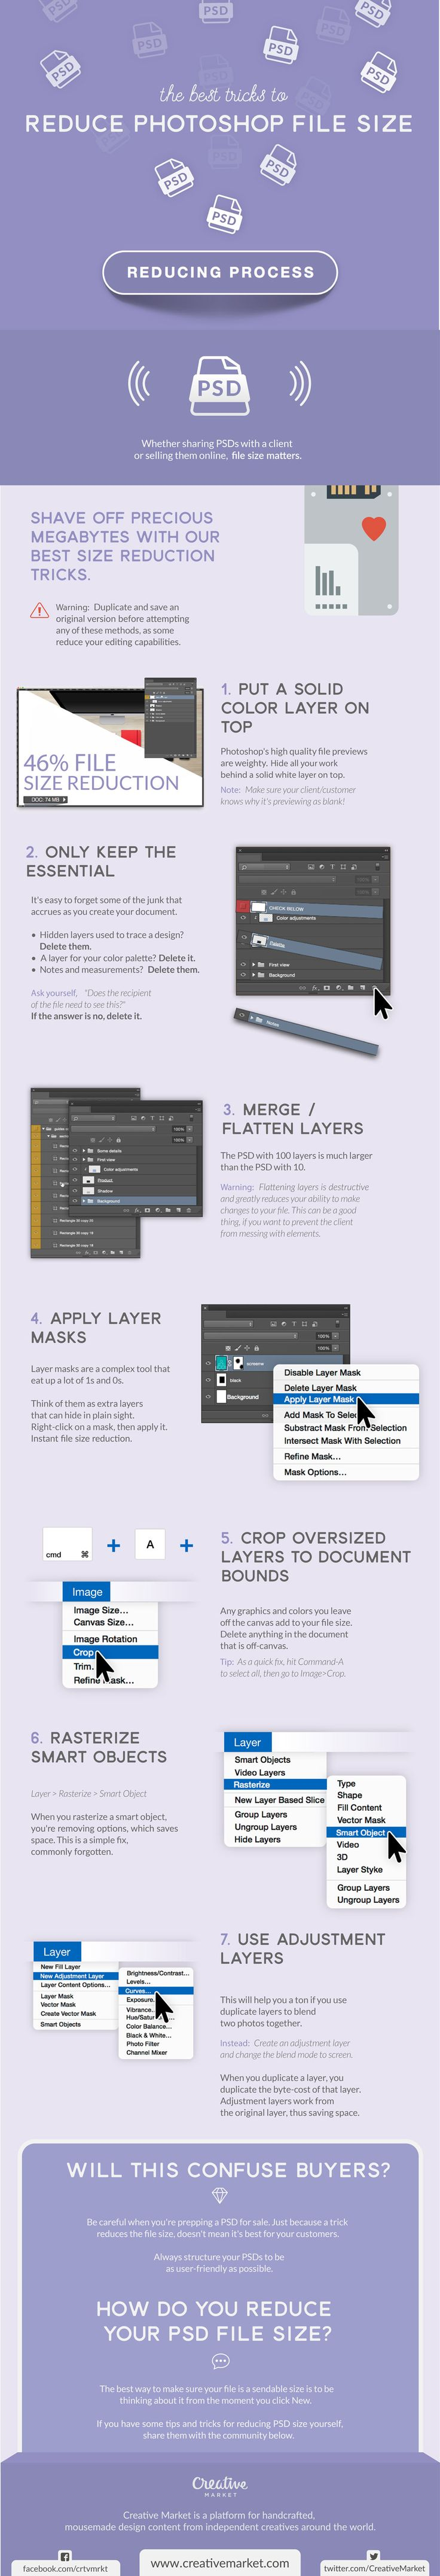 Struggling with Photoshop file size? You'll want to bookmark (and print!) this infographic.